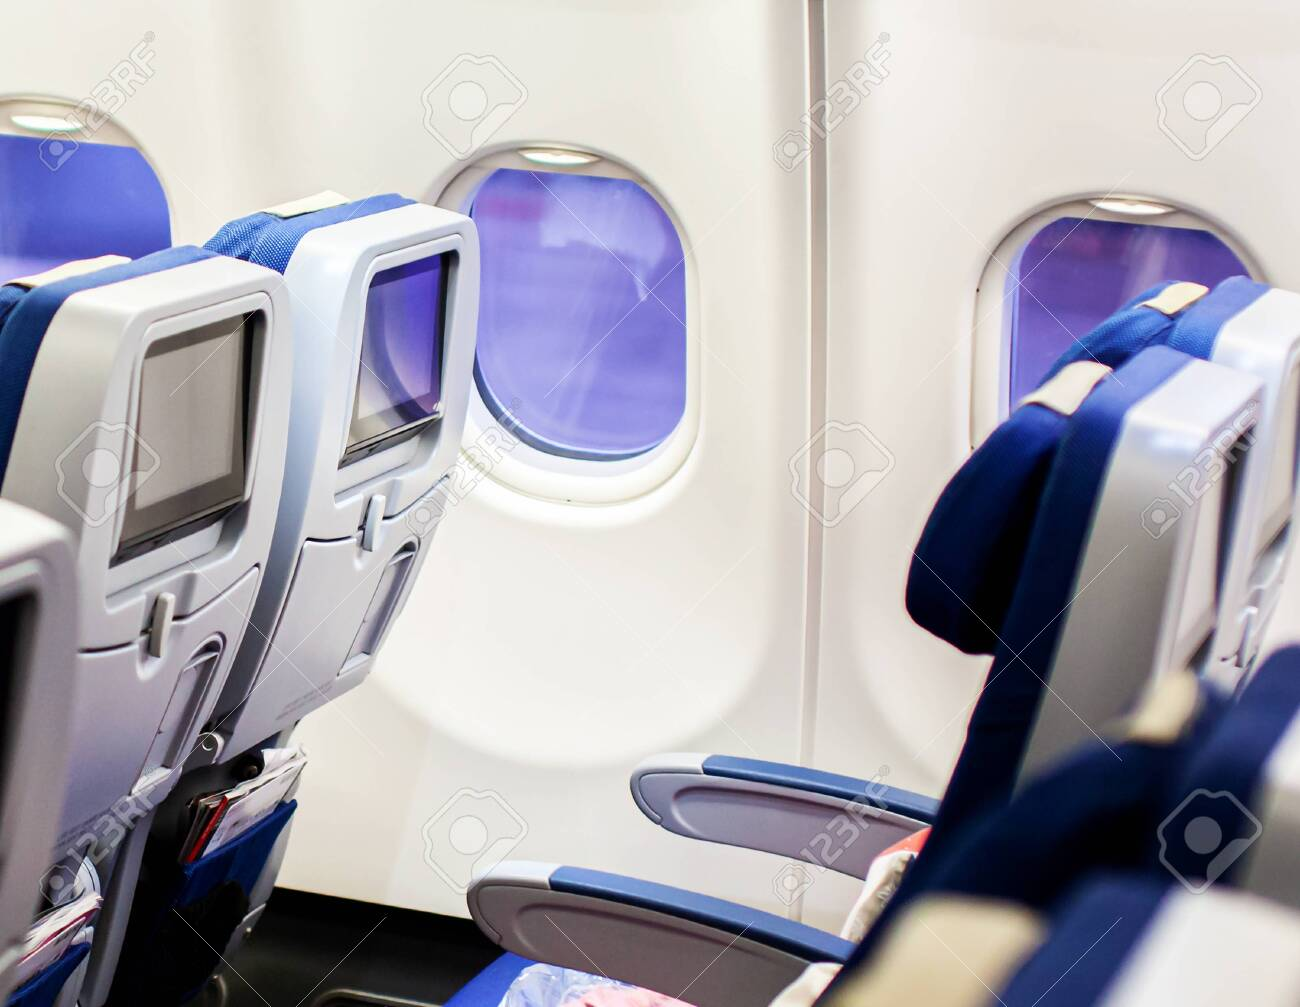 Aircraft interior with seats and blank touch screens displays. - 130370649